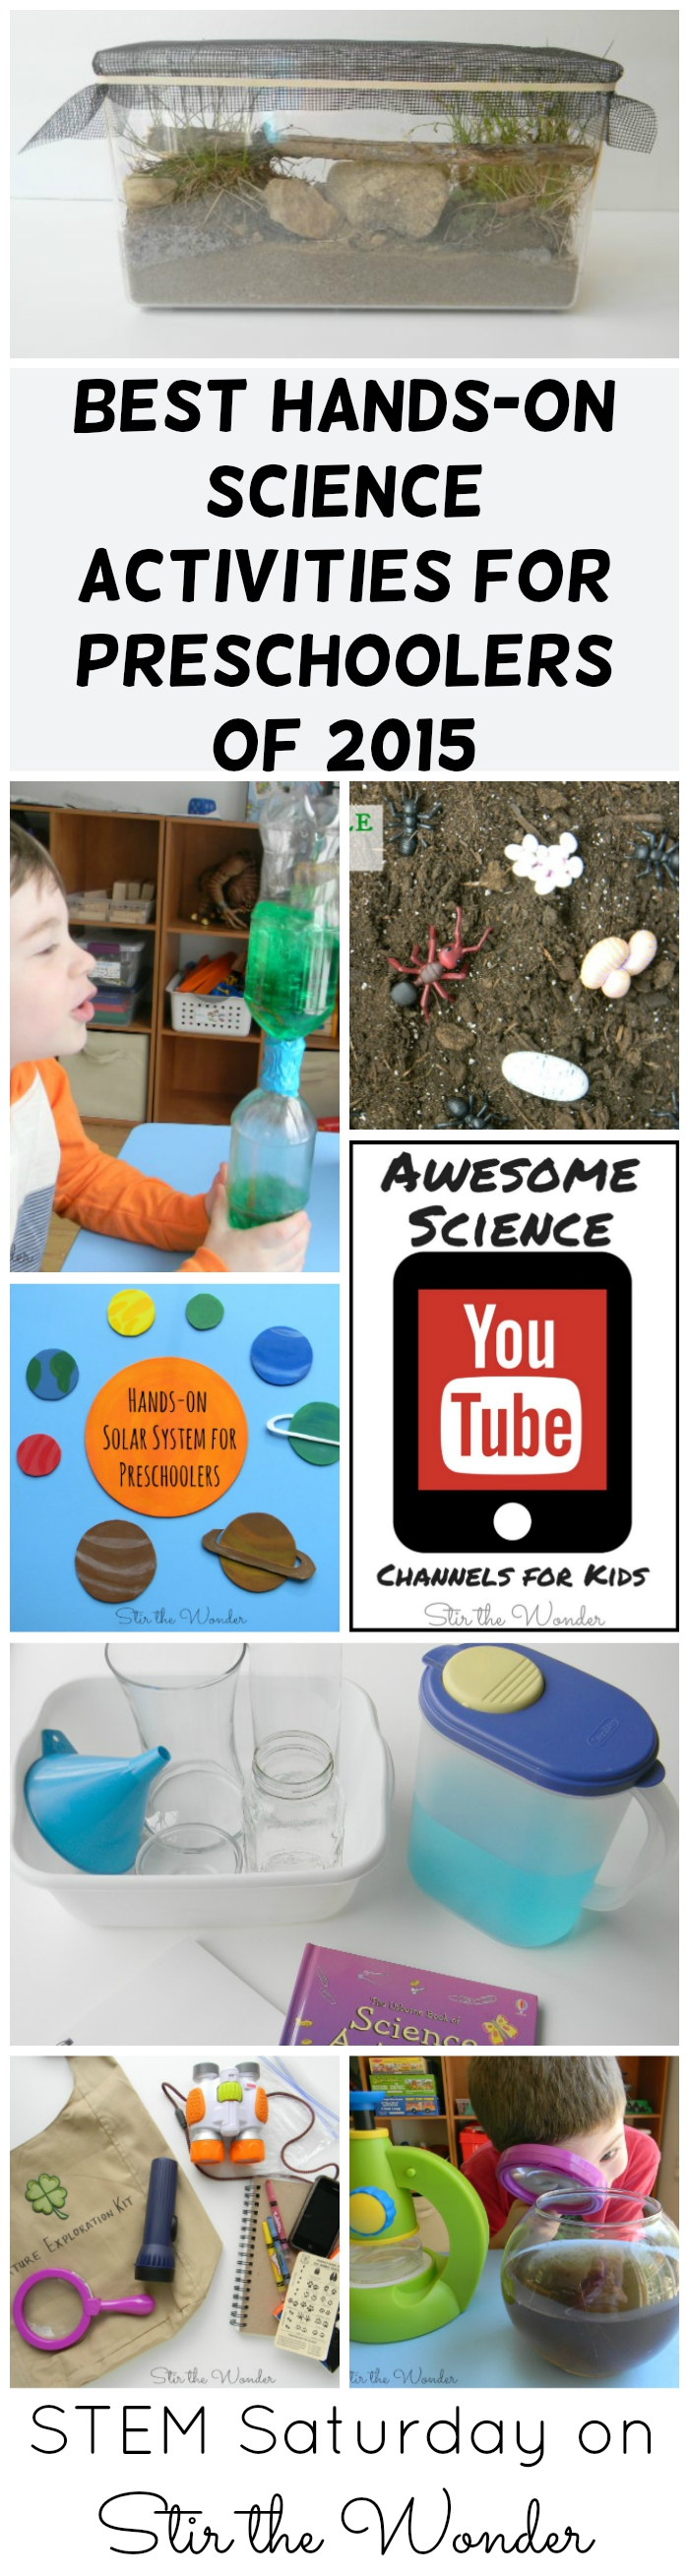 Best Hands-on Science Activities for Preschoolers from 2015